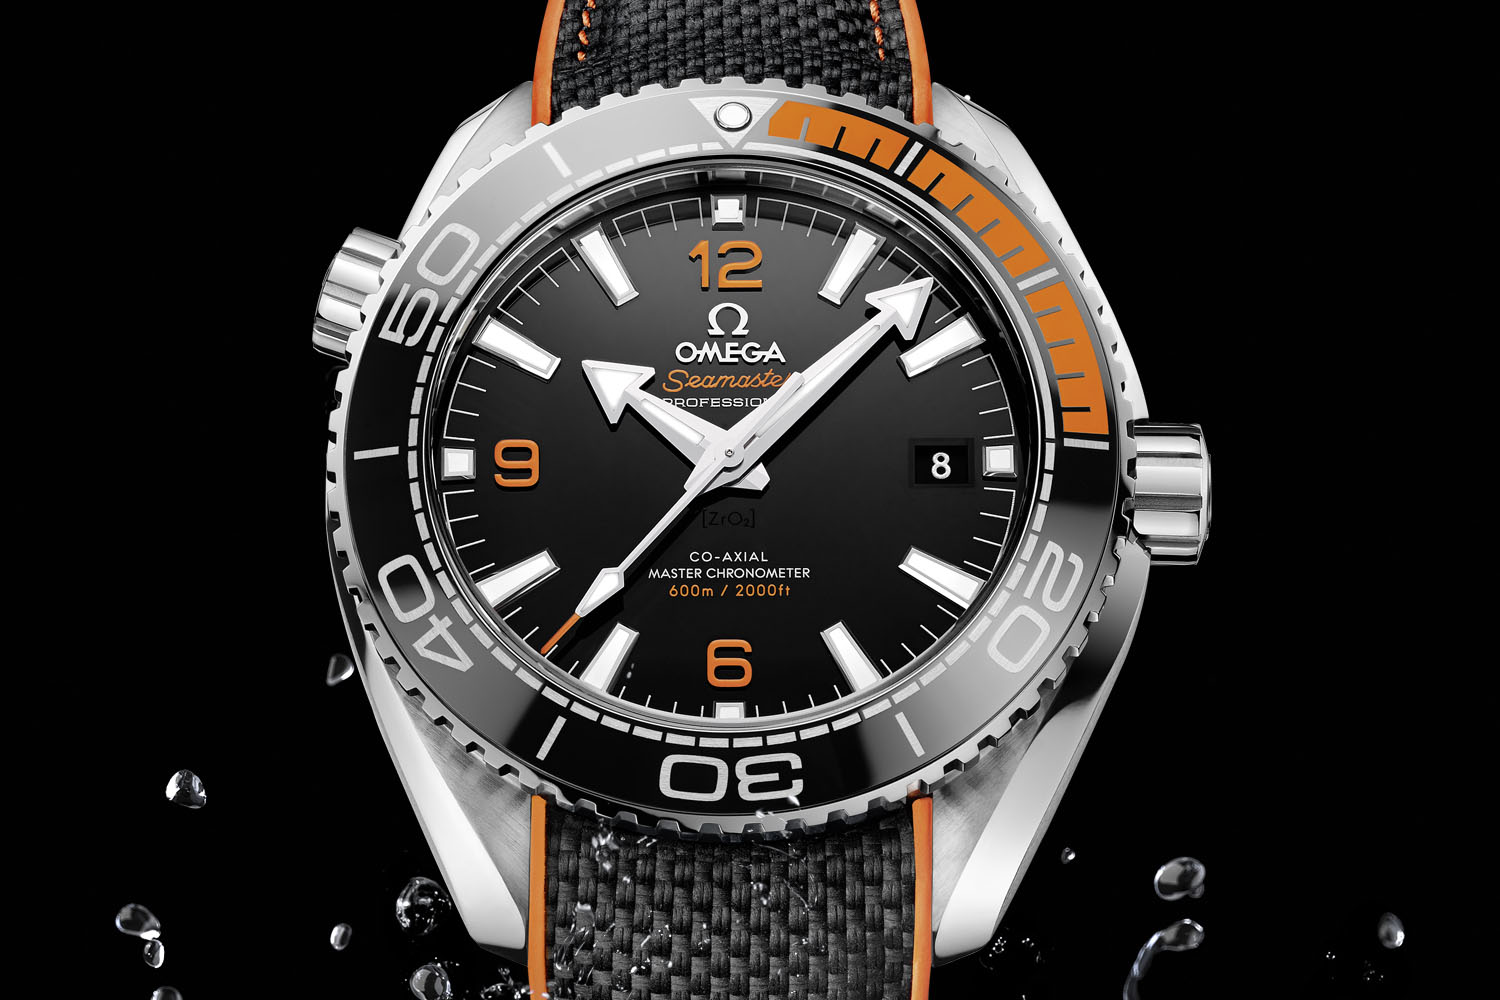 Omega-Seamaster-Planet-Ocean-43.5mm-Automatic-Black-and-Orange-Master-Chronometer-4